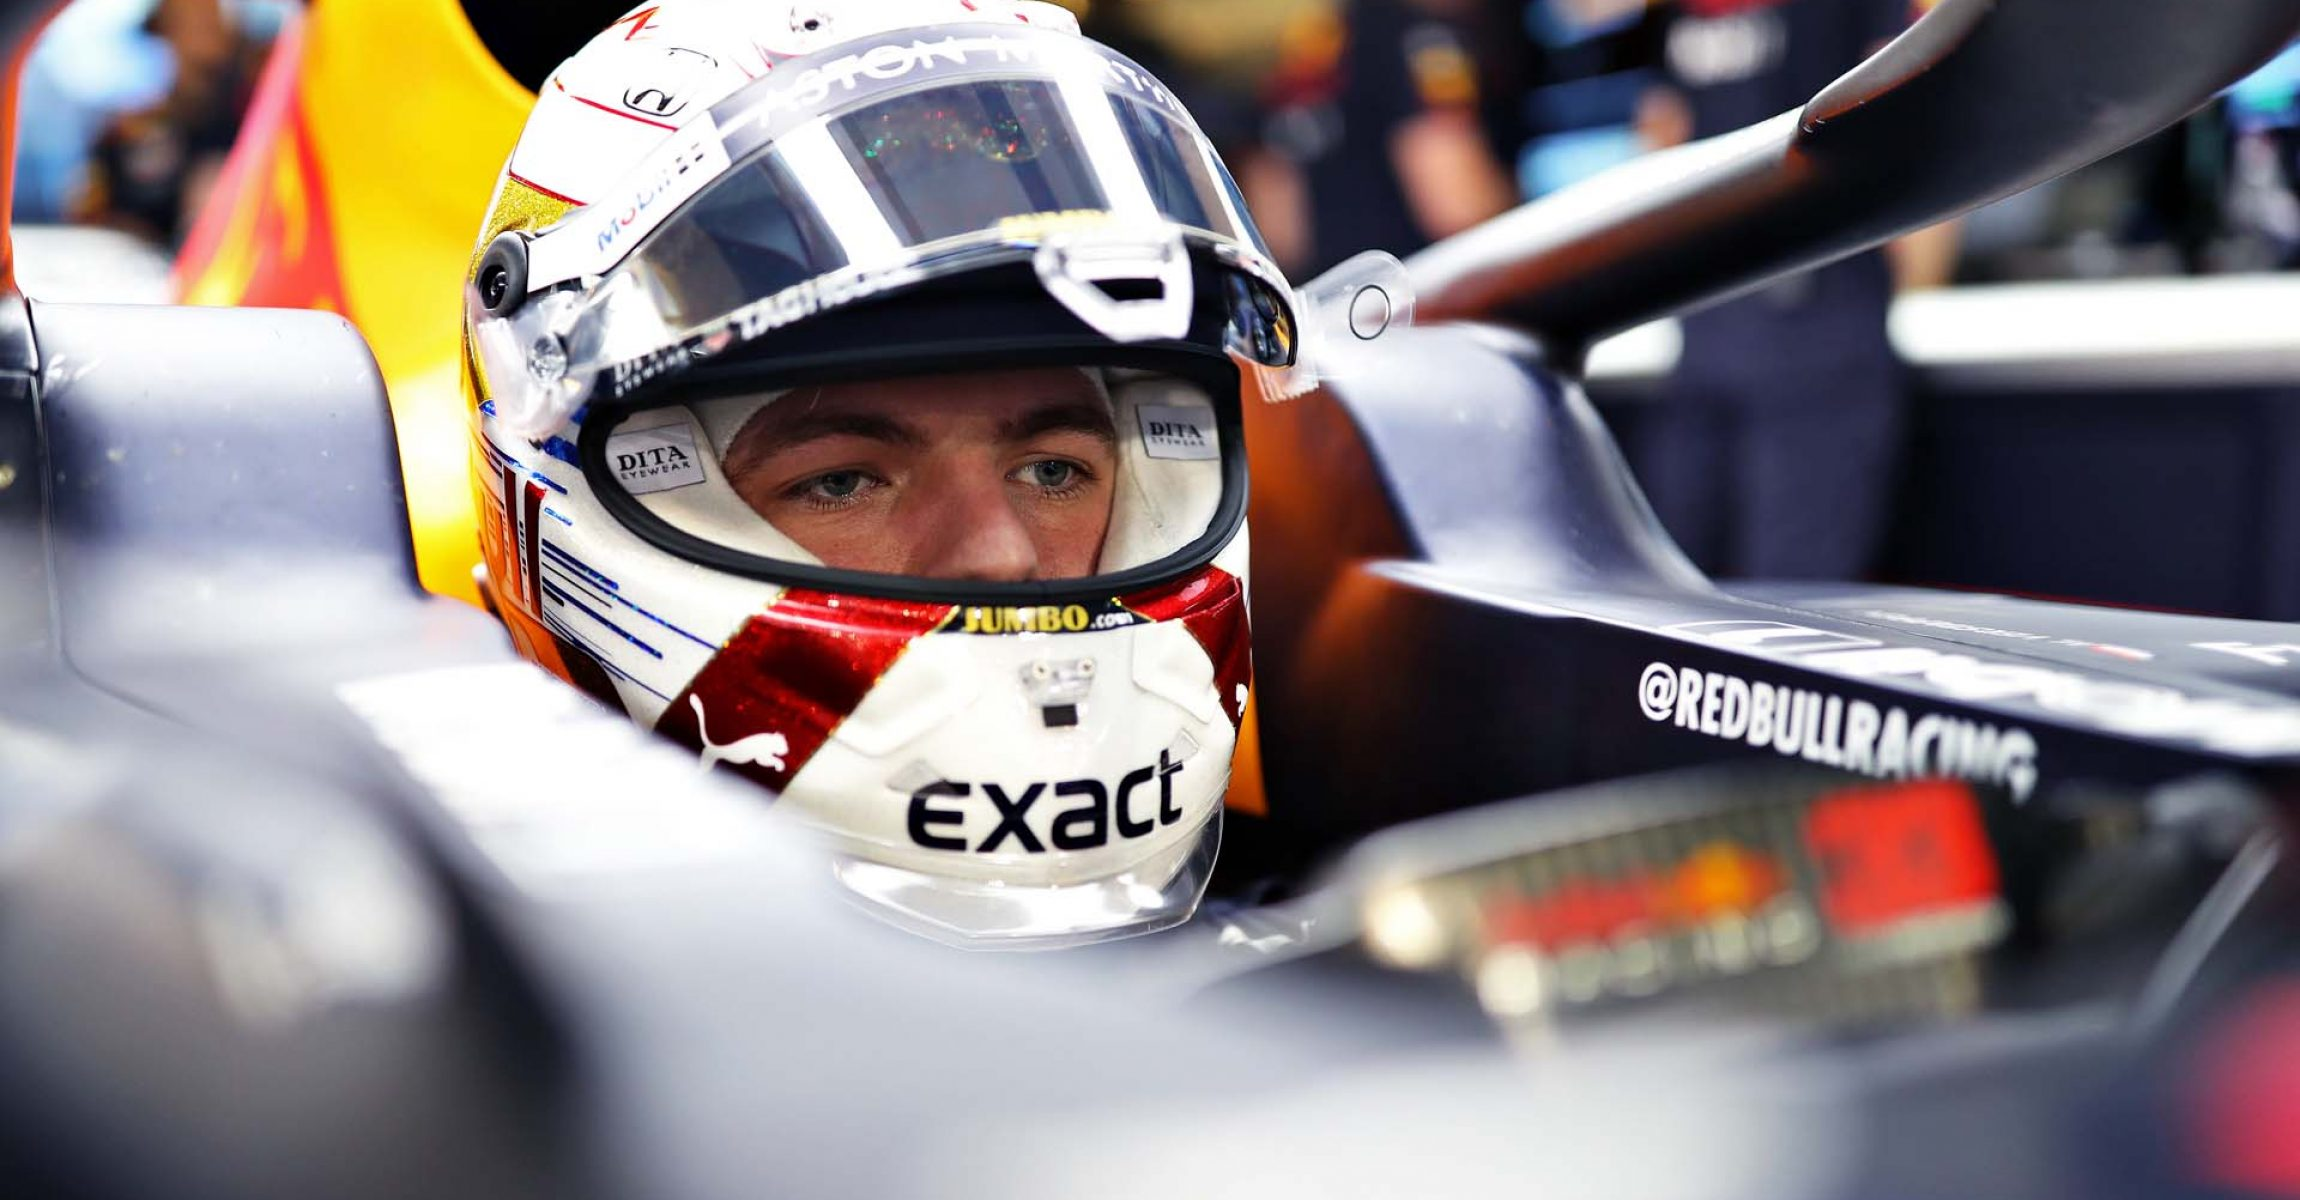 ABU DHABI, UNITED ARAB EMIRATES - NOVEMBER 30: Max Verstappen of Netherlands and Red Bull Racing prepares to drive in the garage during qualifying for the F1 Grand Prix of Abu Dhabi at Yas Marina Circuit on November 30, 2019 in Abu Dhabi, United Arab Emirates. (Photo by Mark Thompson/Getty Images) // Getty Images / Red Bull Content Pool  // AP-22BHK3W7W1W11 // Usage for editorial use only //